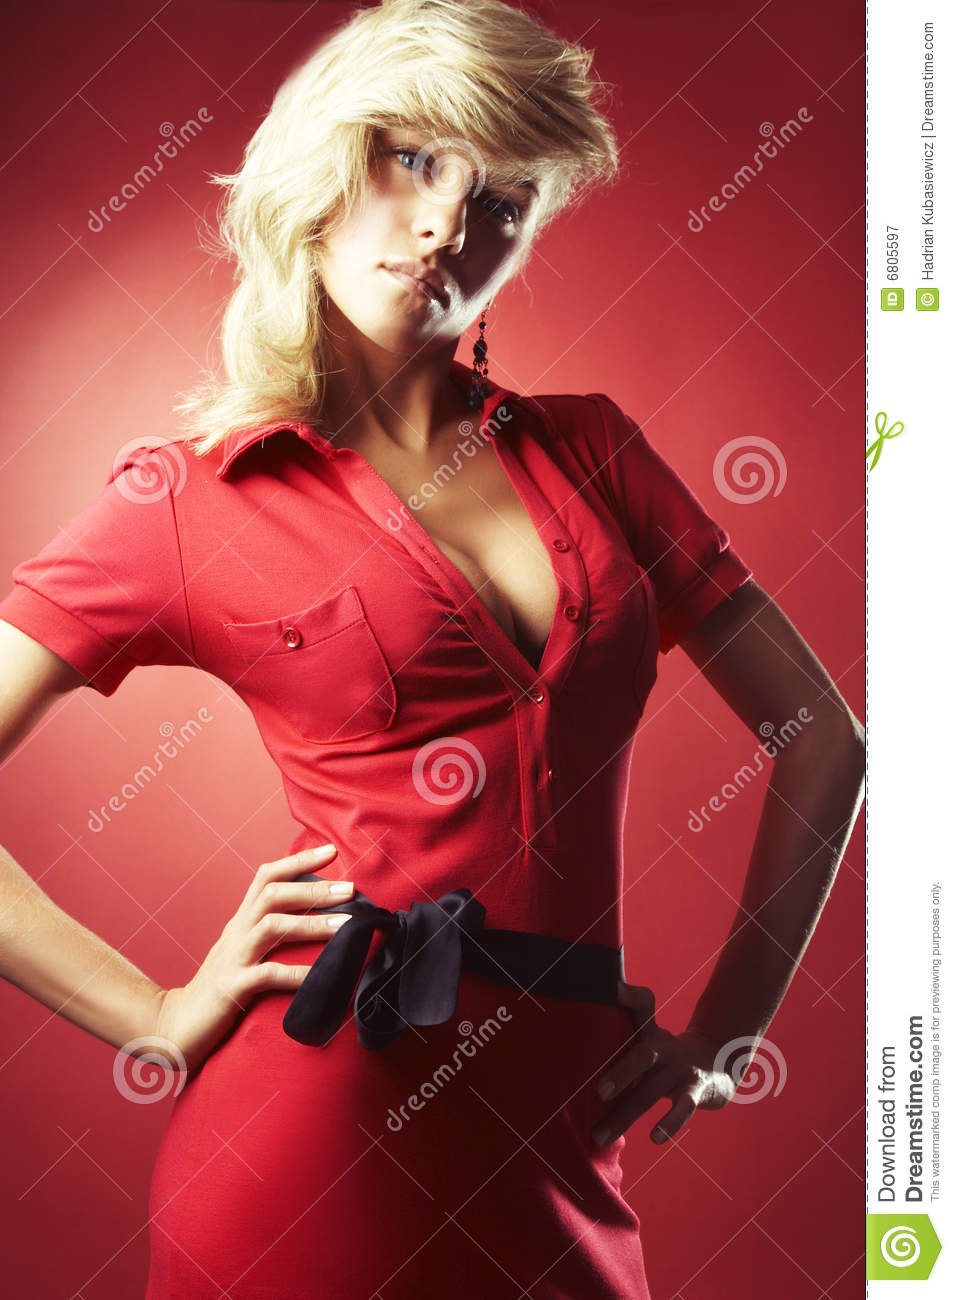 girl in red blouse